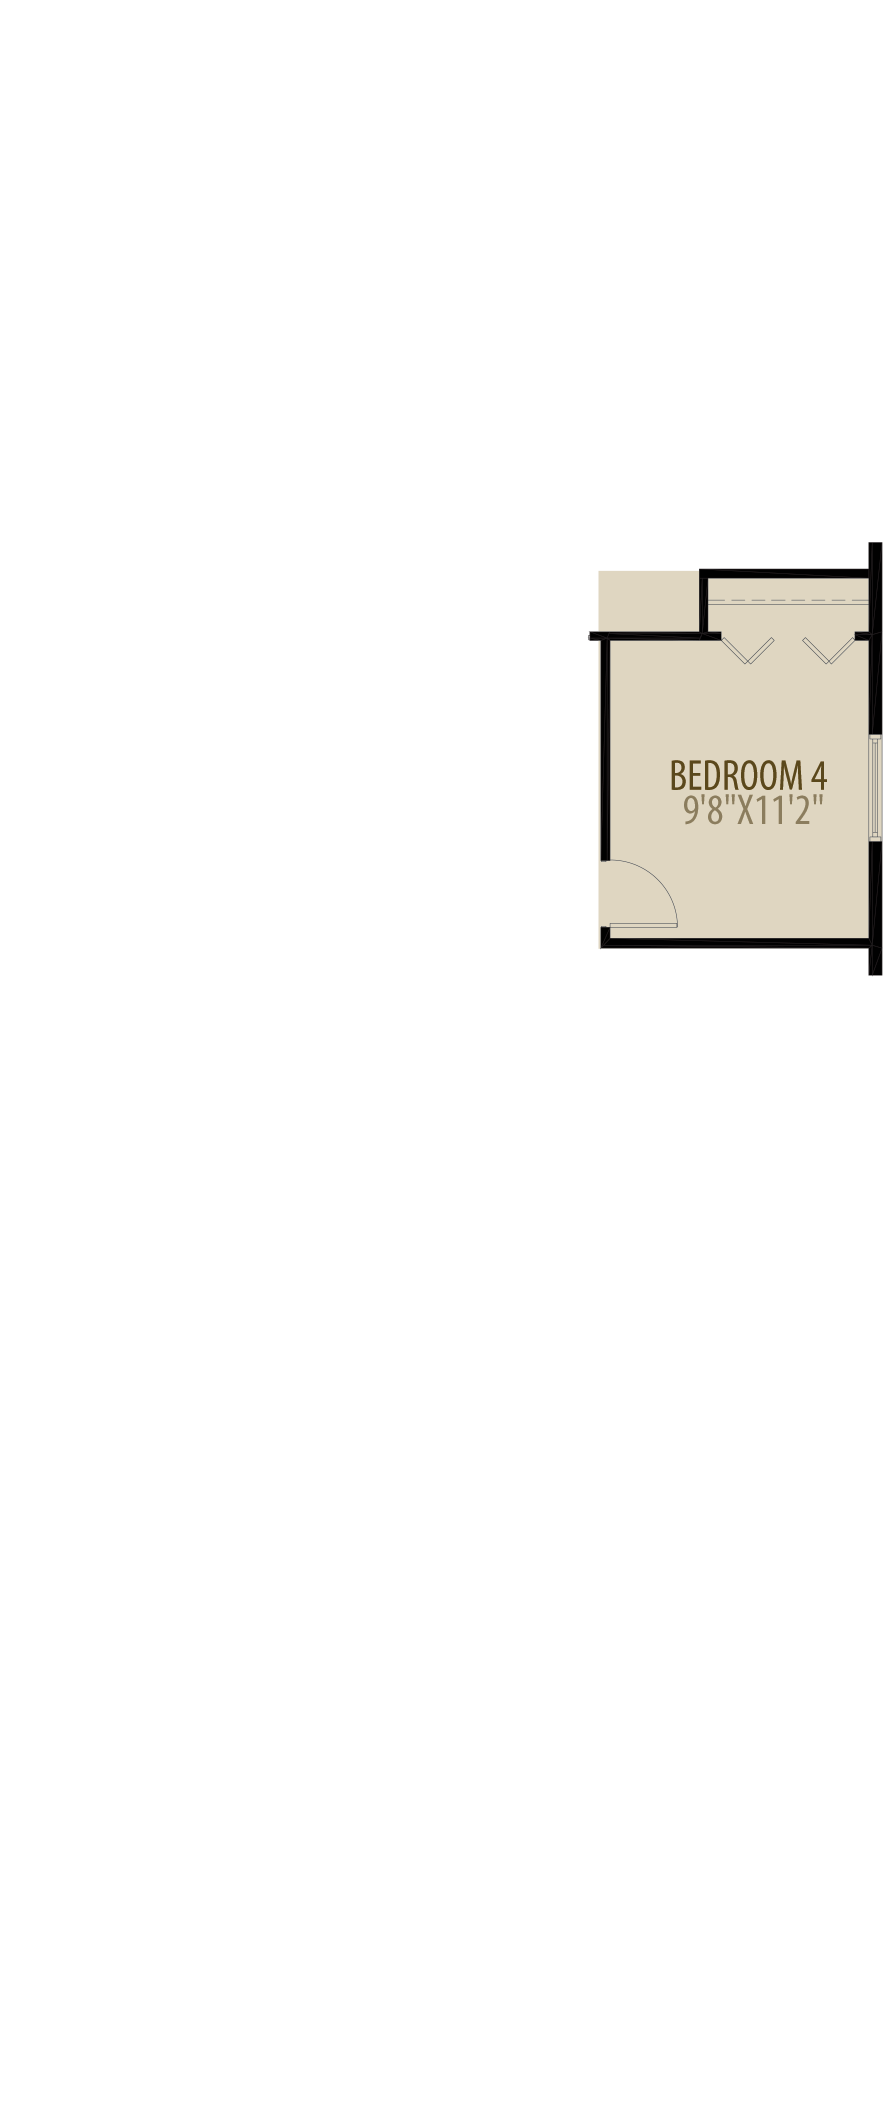 4th Bedroom adds 120 sq ft